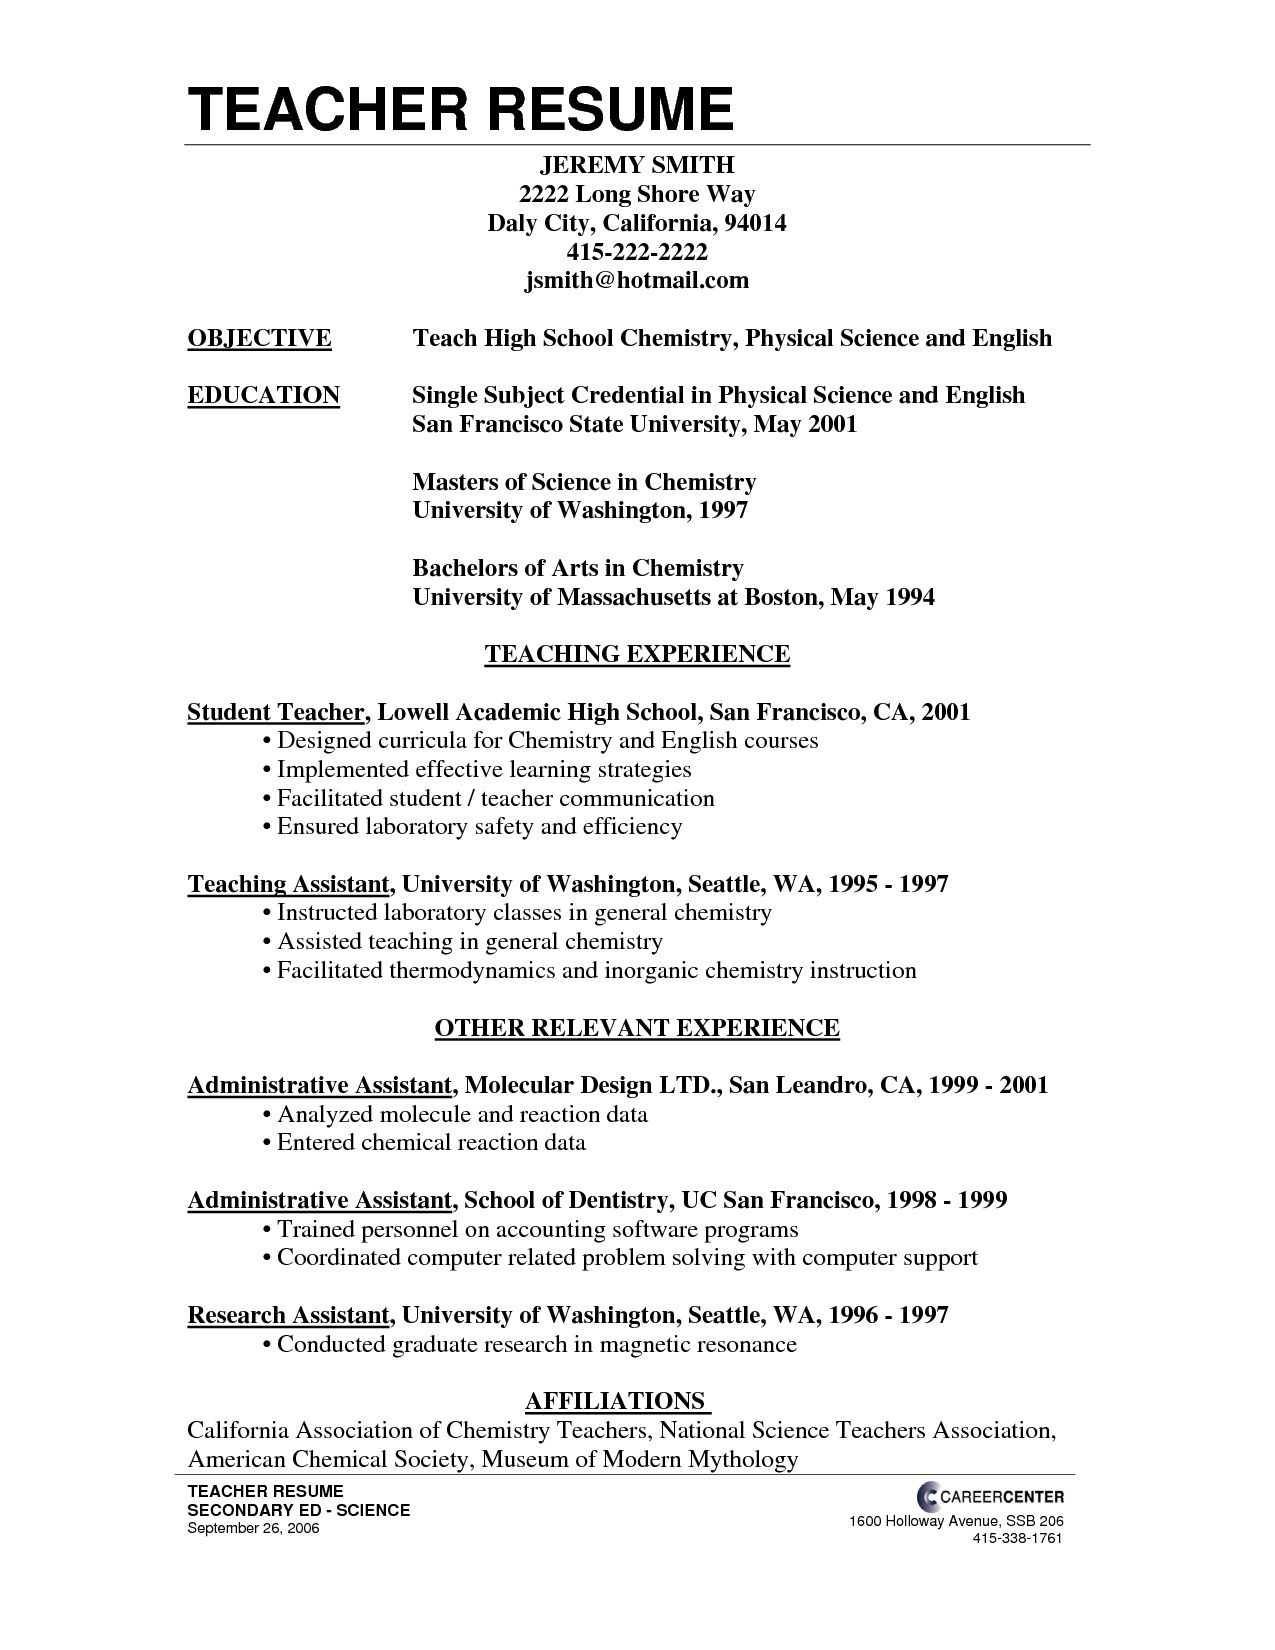 High School Teacher Resume | getha krisha | Pinterest | High school ...